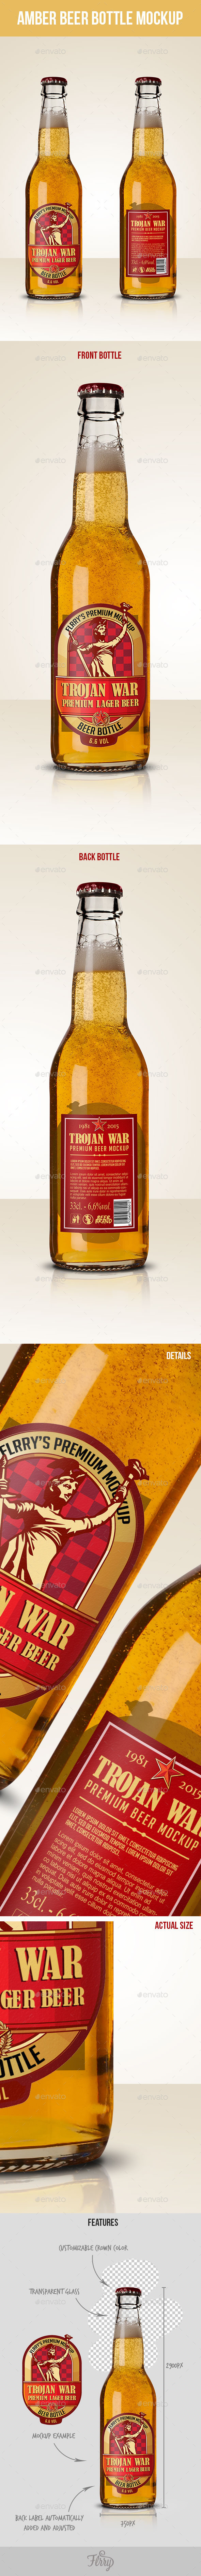 GraphicRiver Premium Amber Beer Bottle Mockup 10125321